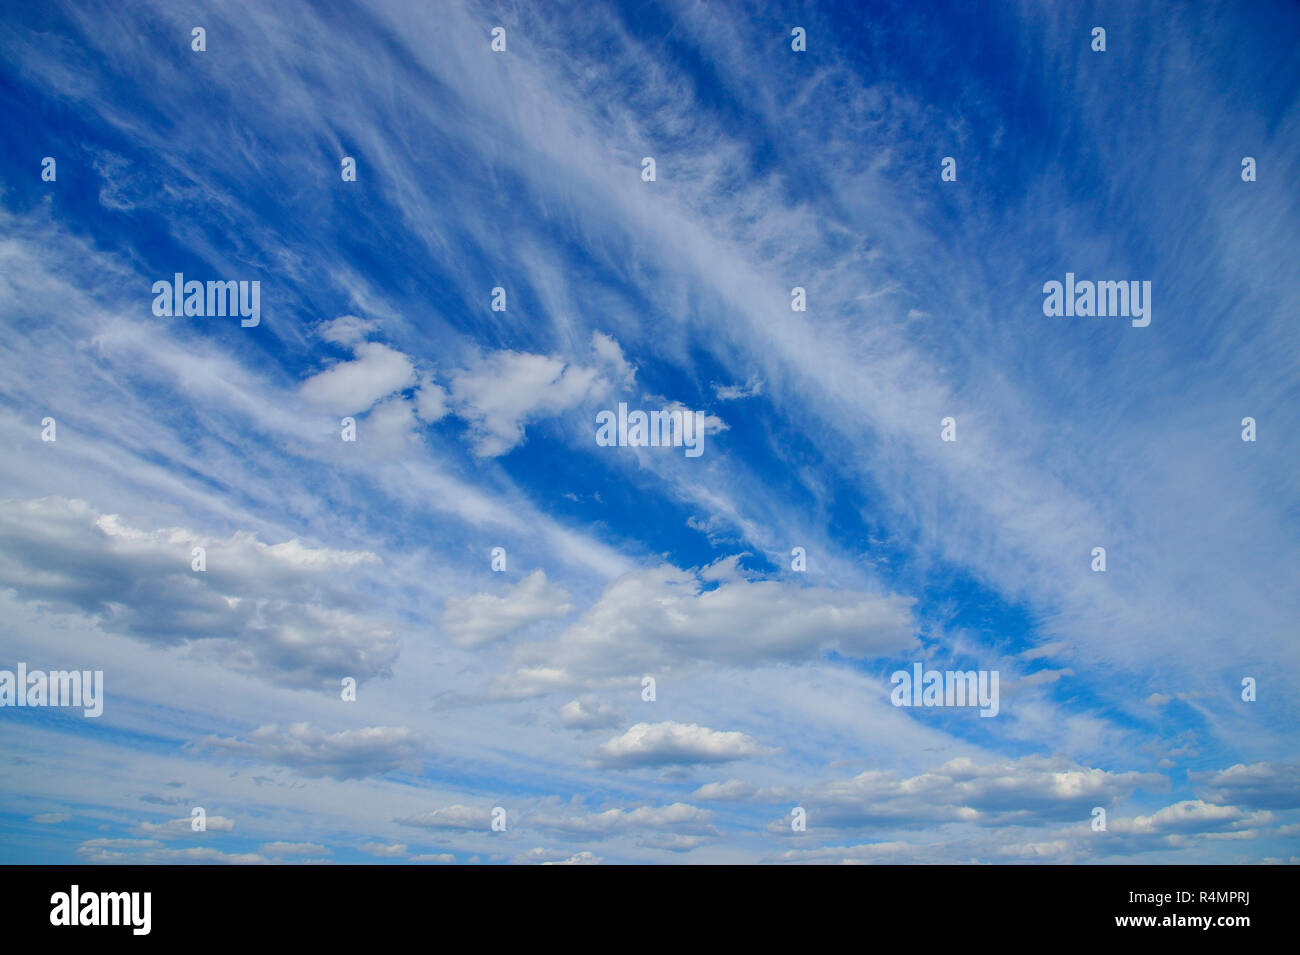 White cloud formations on a blue sky in rural Alberta Canada. - Stock Image